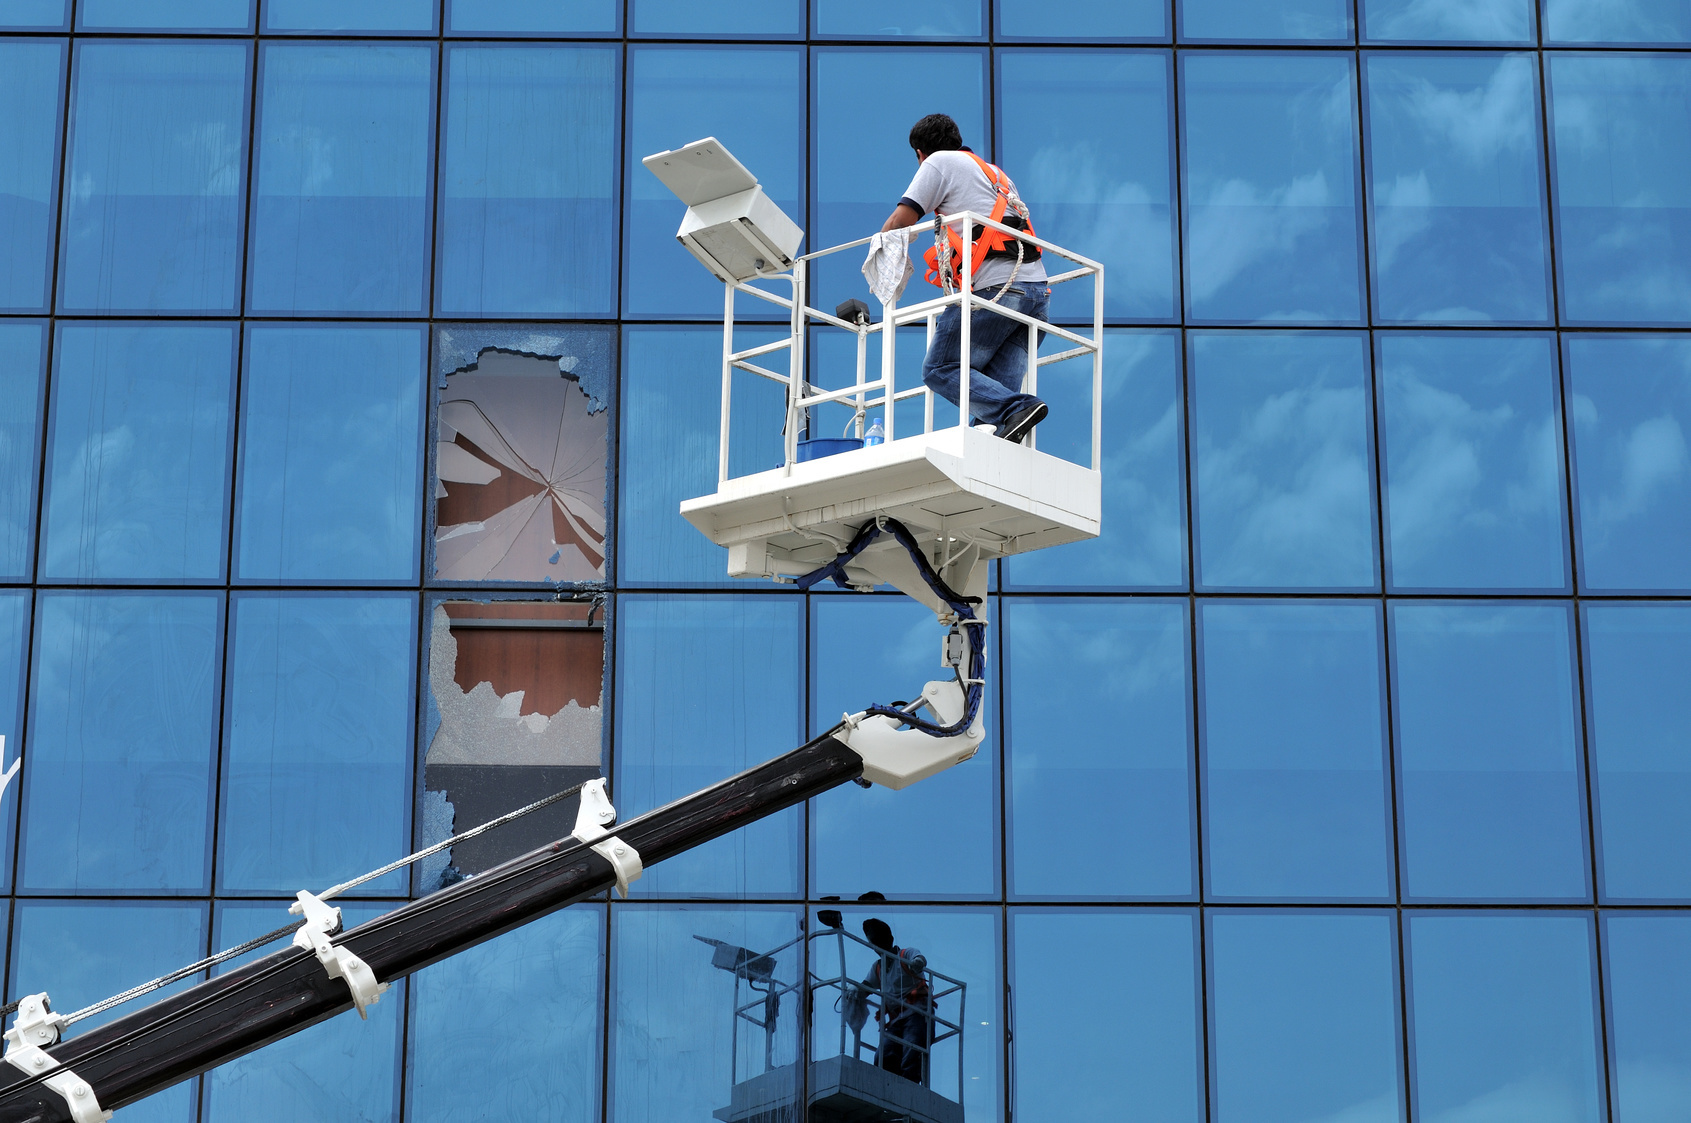 cleaning commercial window glass from outside of building